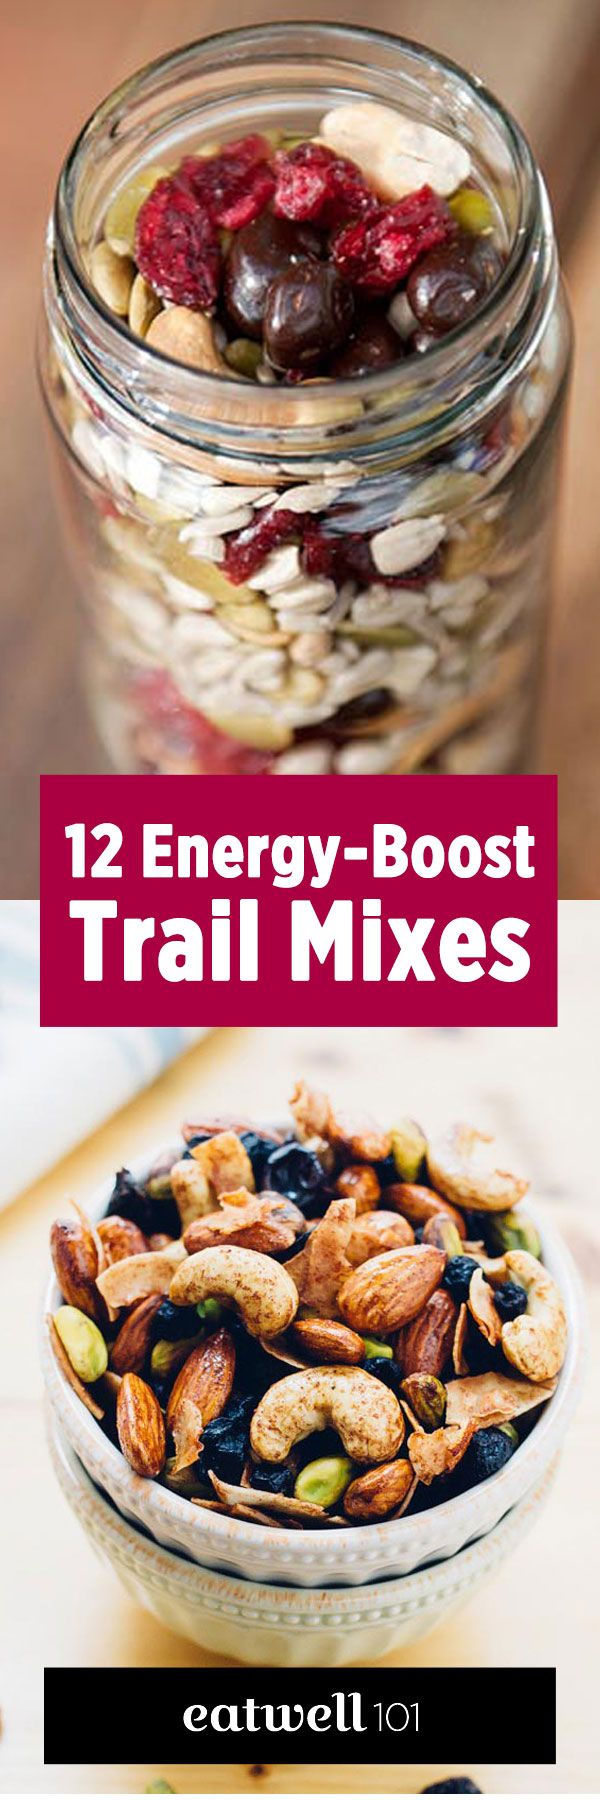 Try one of these 12 recipes for lightweight and portable snacks, full of energy-dense ingredients.